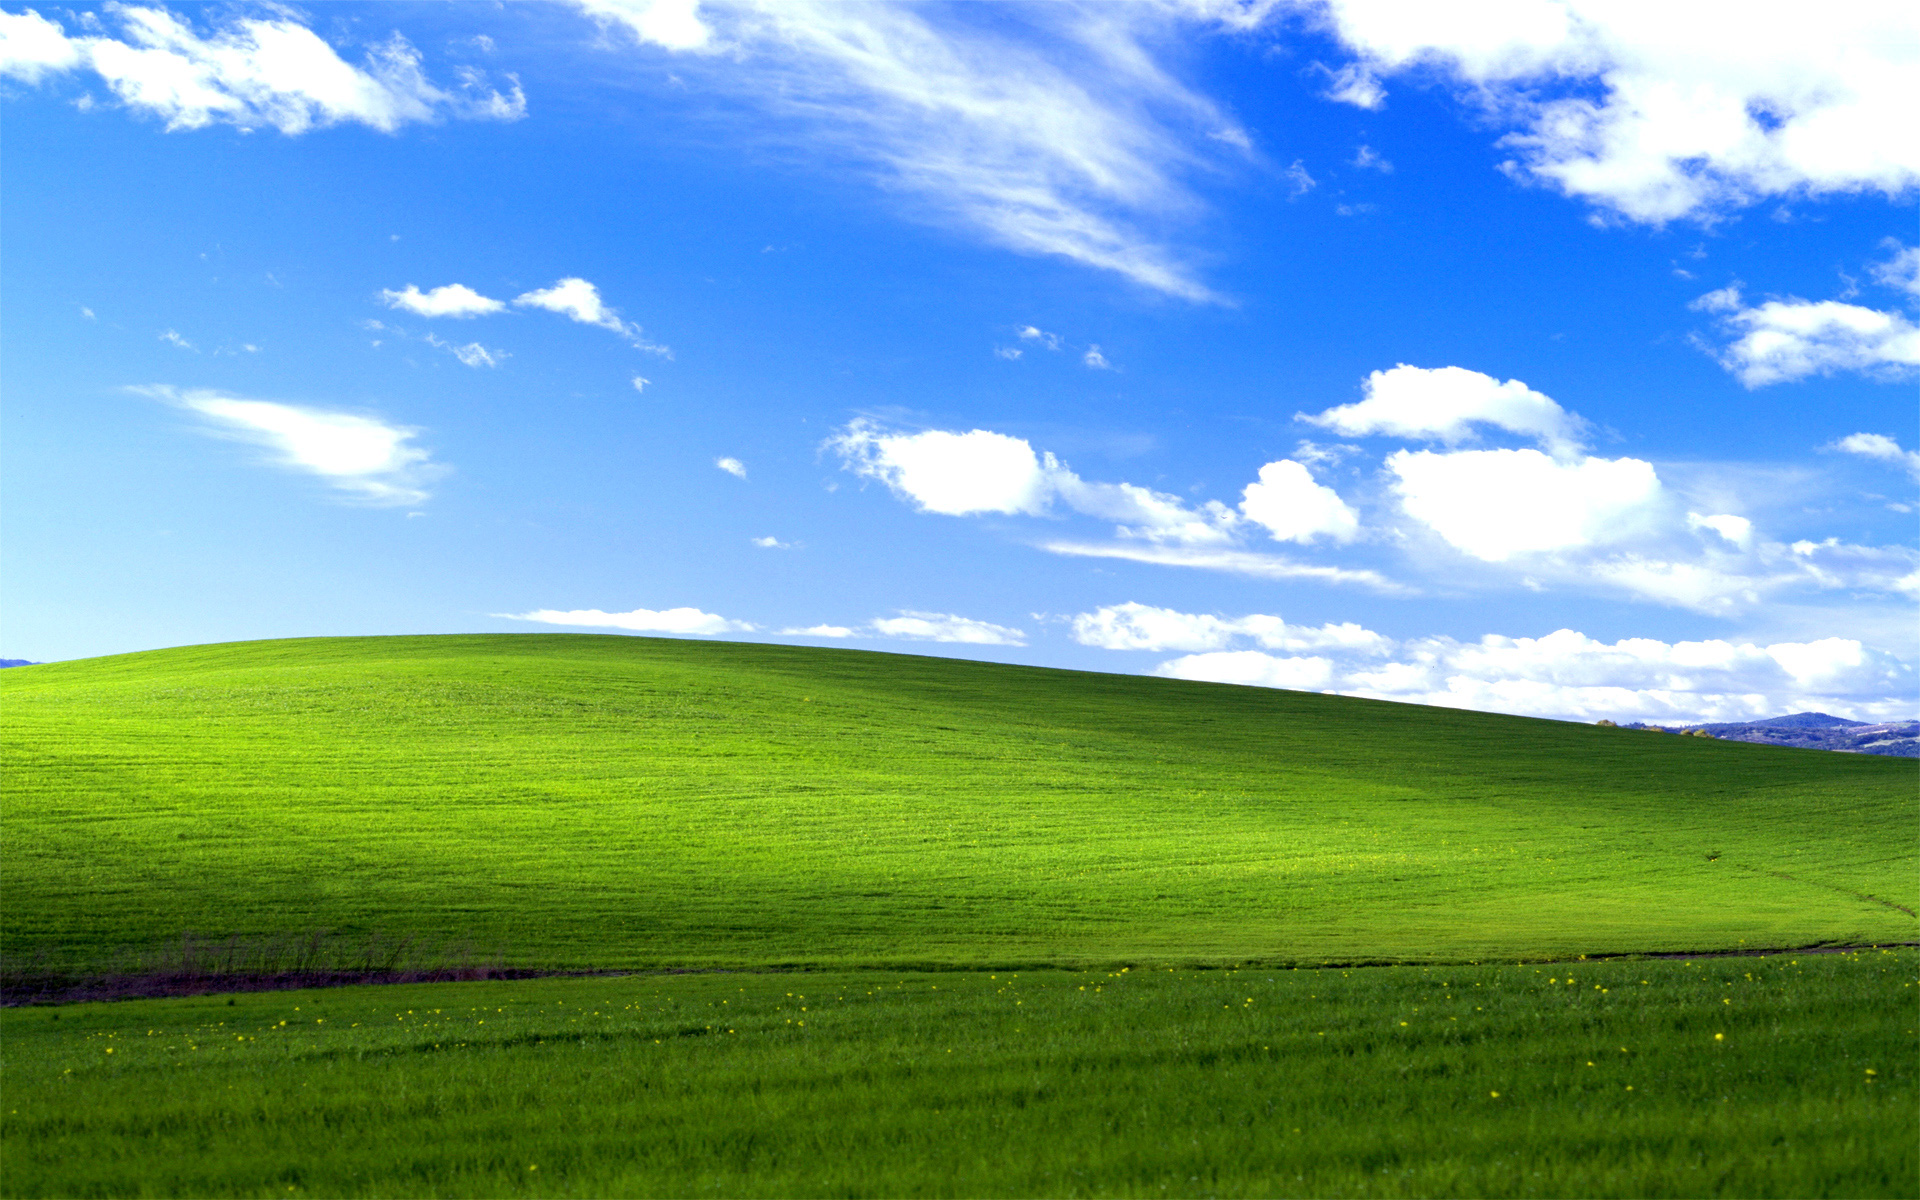 waving goodbye to old windows xp